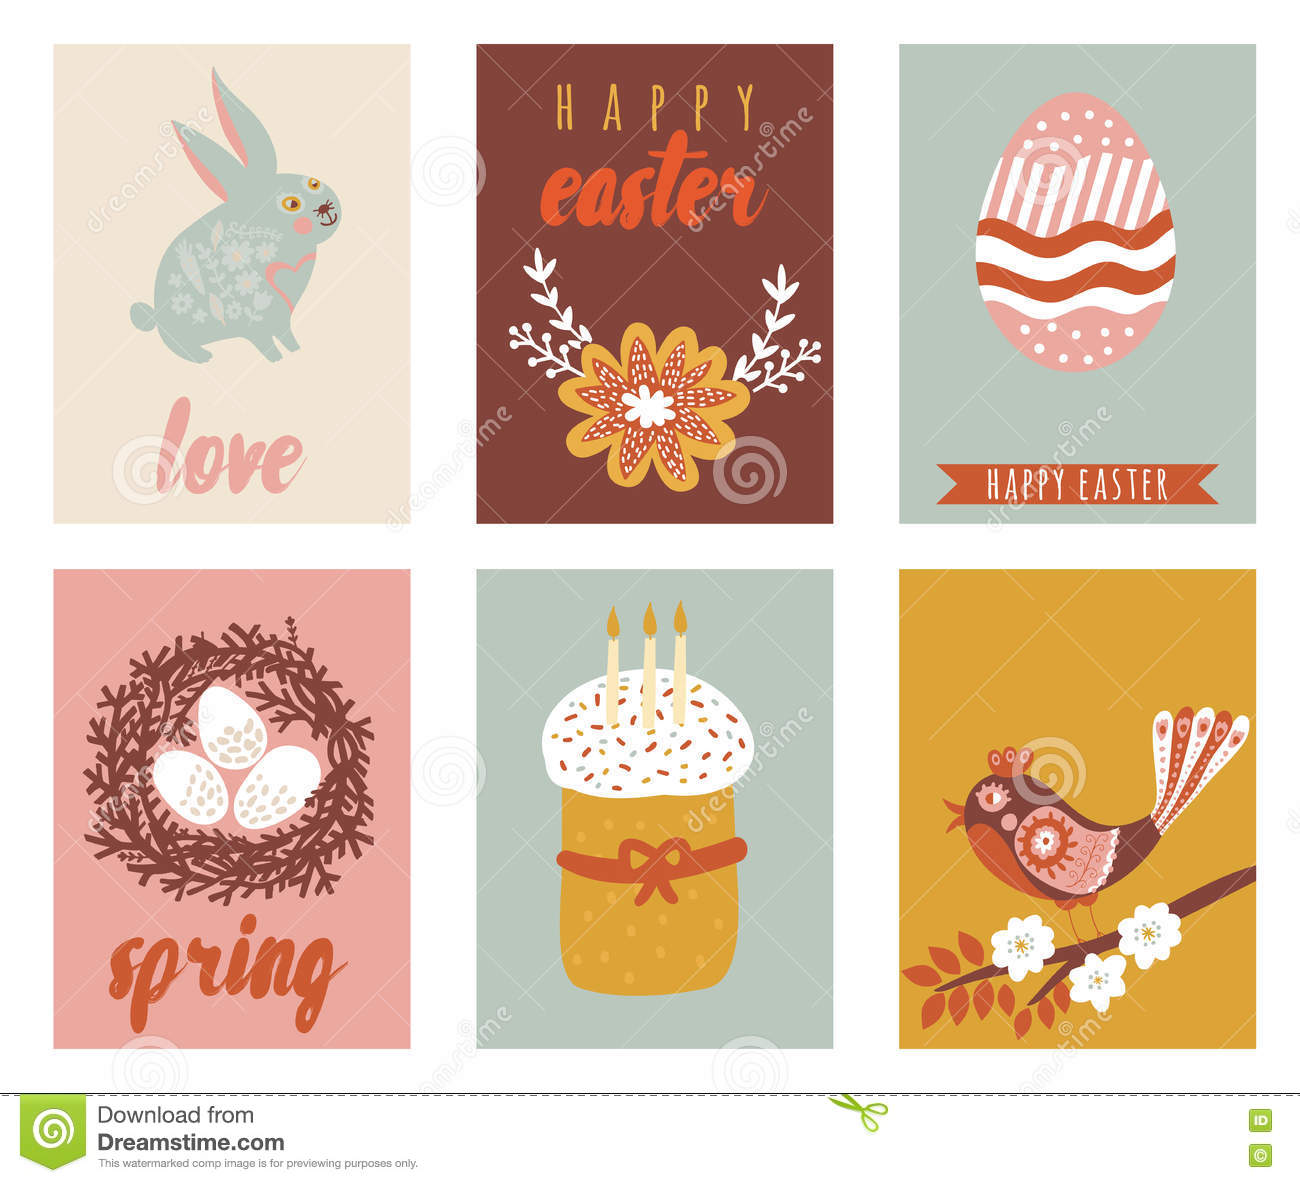 Happy Easter Greeting Cards Template With Easter Eggs Vector – Easter Greeting Card Template